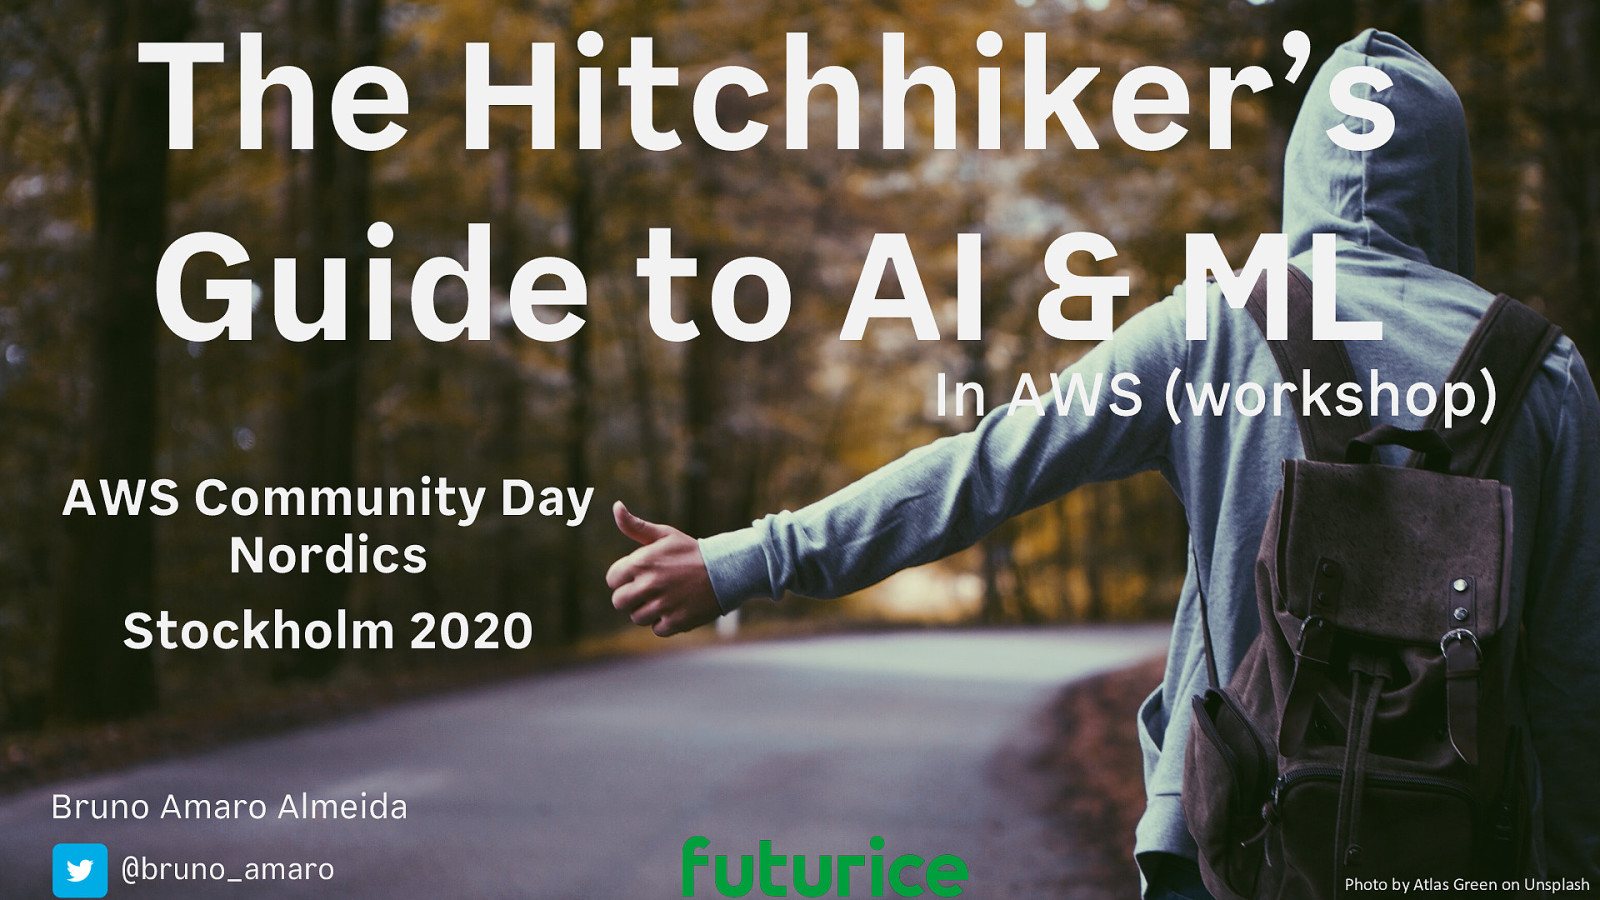 The Hitchhiker's Guide to AI & ML in AWS (workshop)